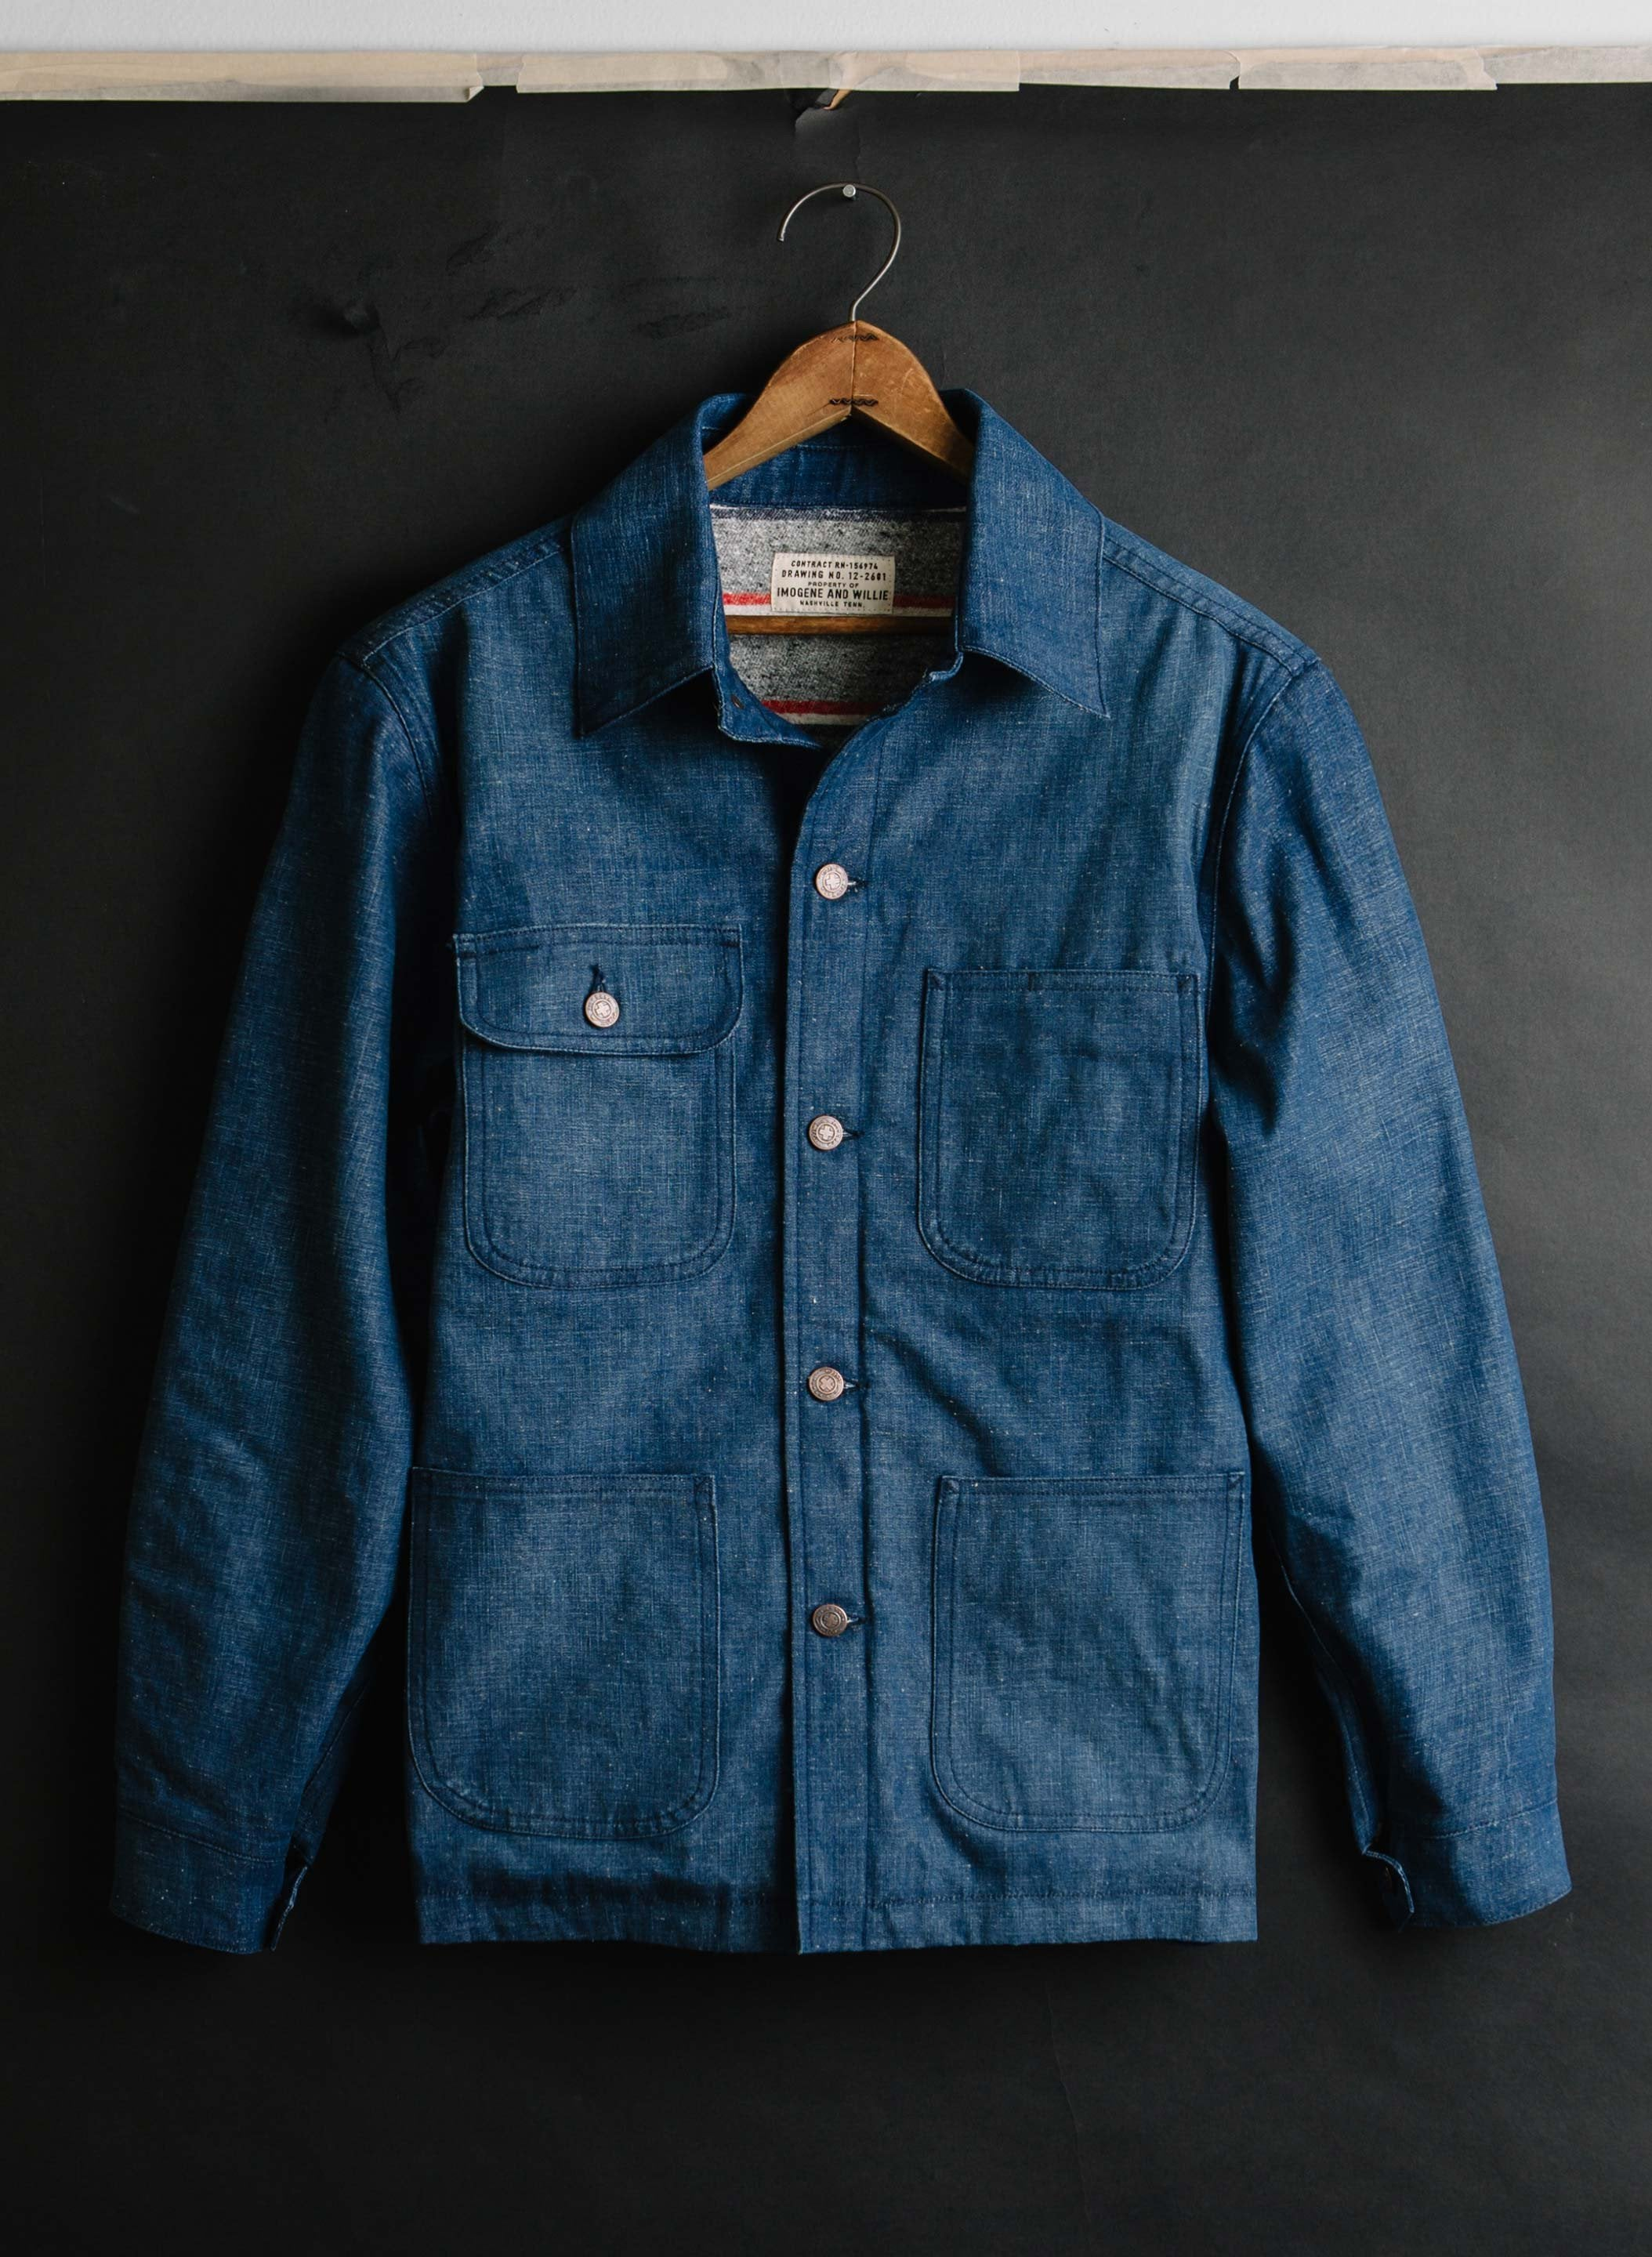 imogene + willie - jack sanded indigo selvage jacket